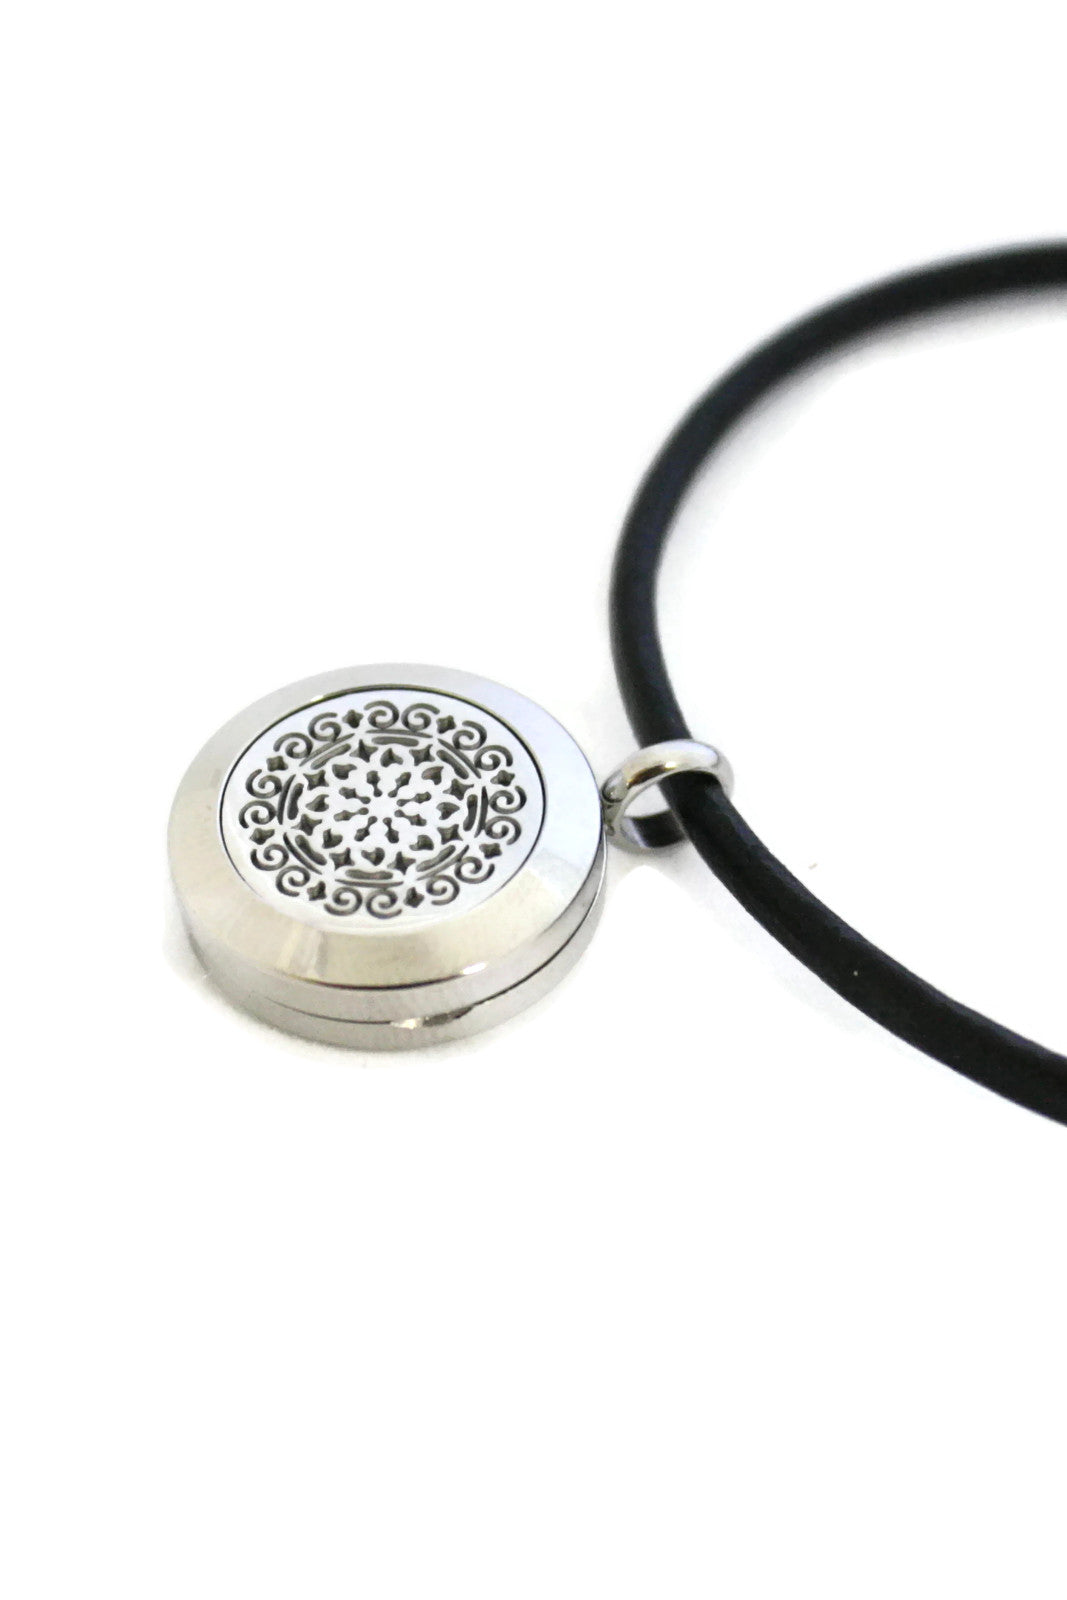 Charmed Black Leather Oil Diffuser Bracelet- Stainless Steel- 20mm-Diffuser Bracelet-Destination Oils